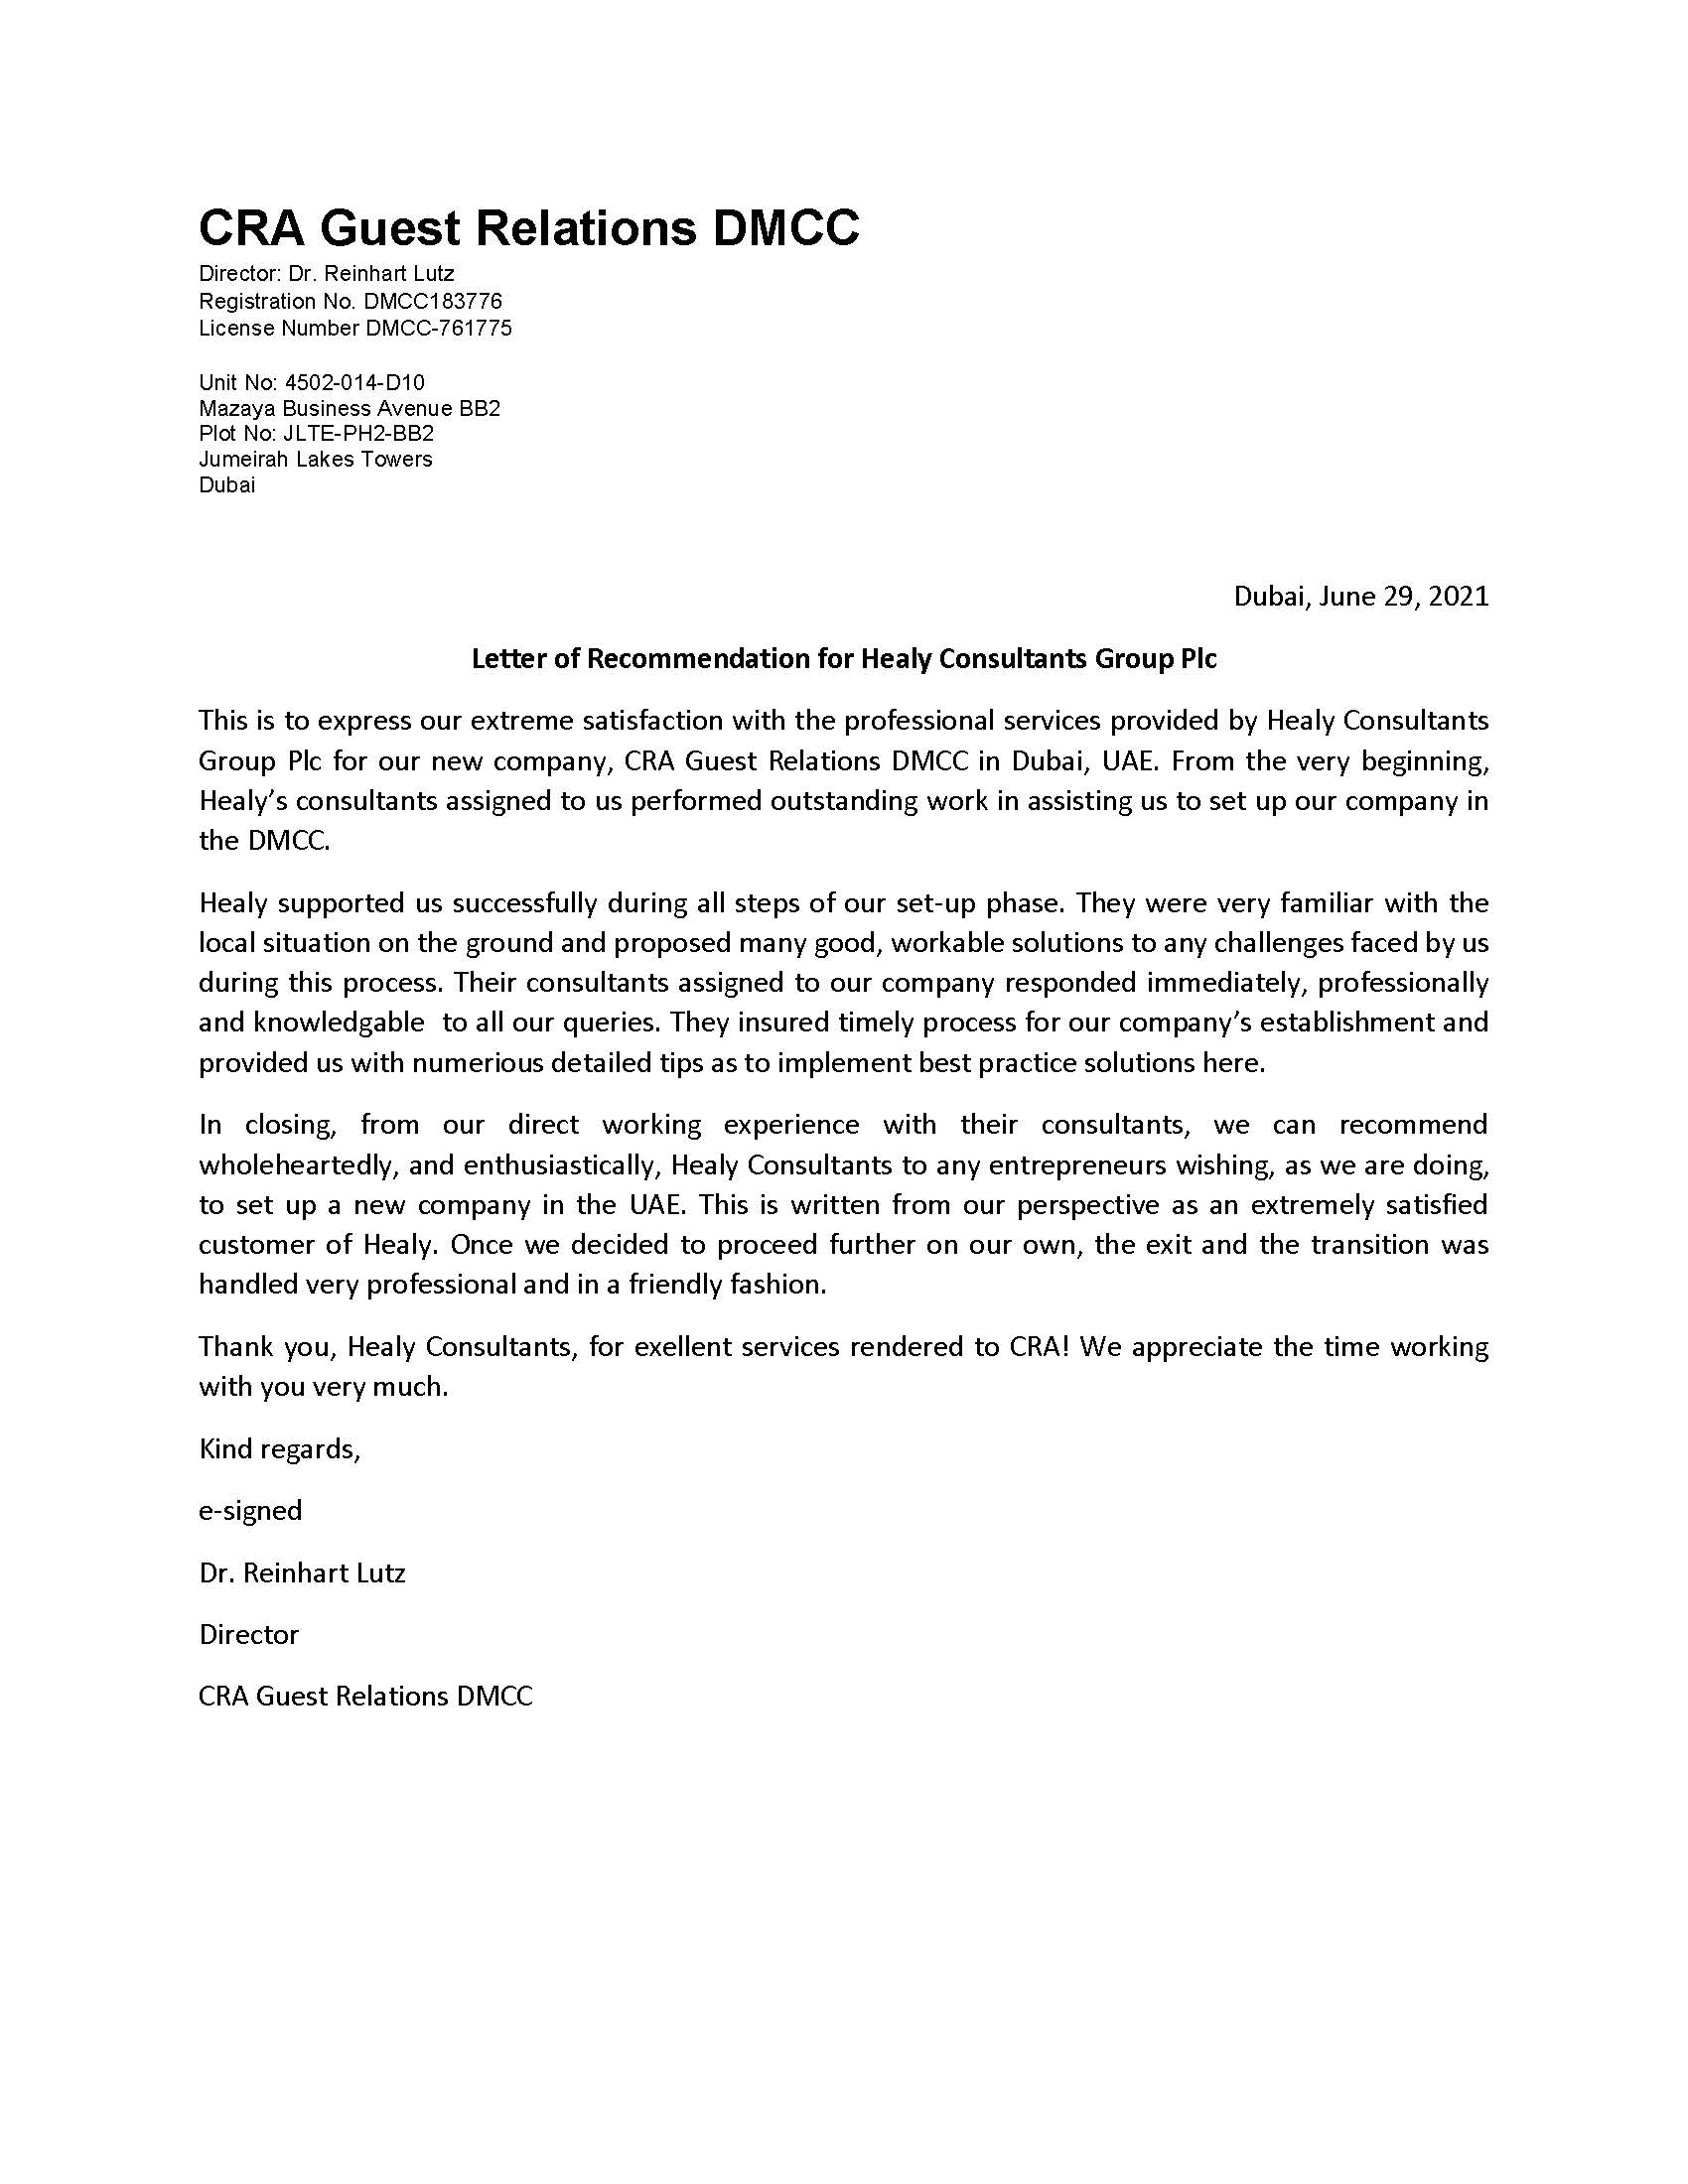 reference letter from CRA Guest Relations DMCC